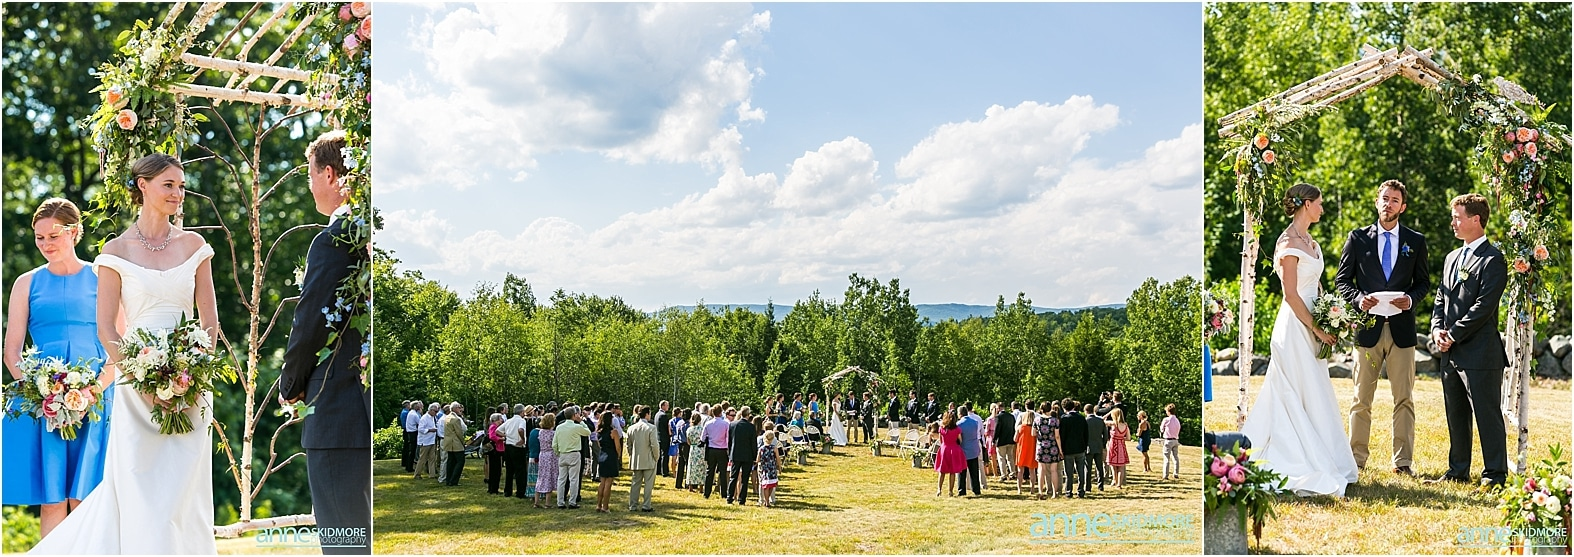 new_hampshire_wedding_photography_0038